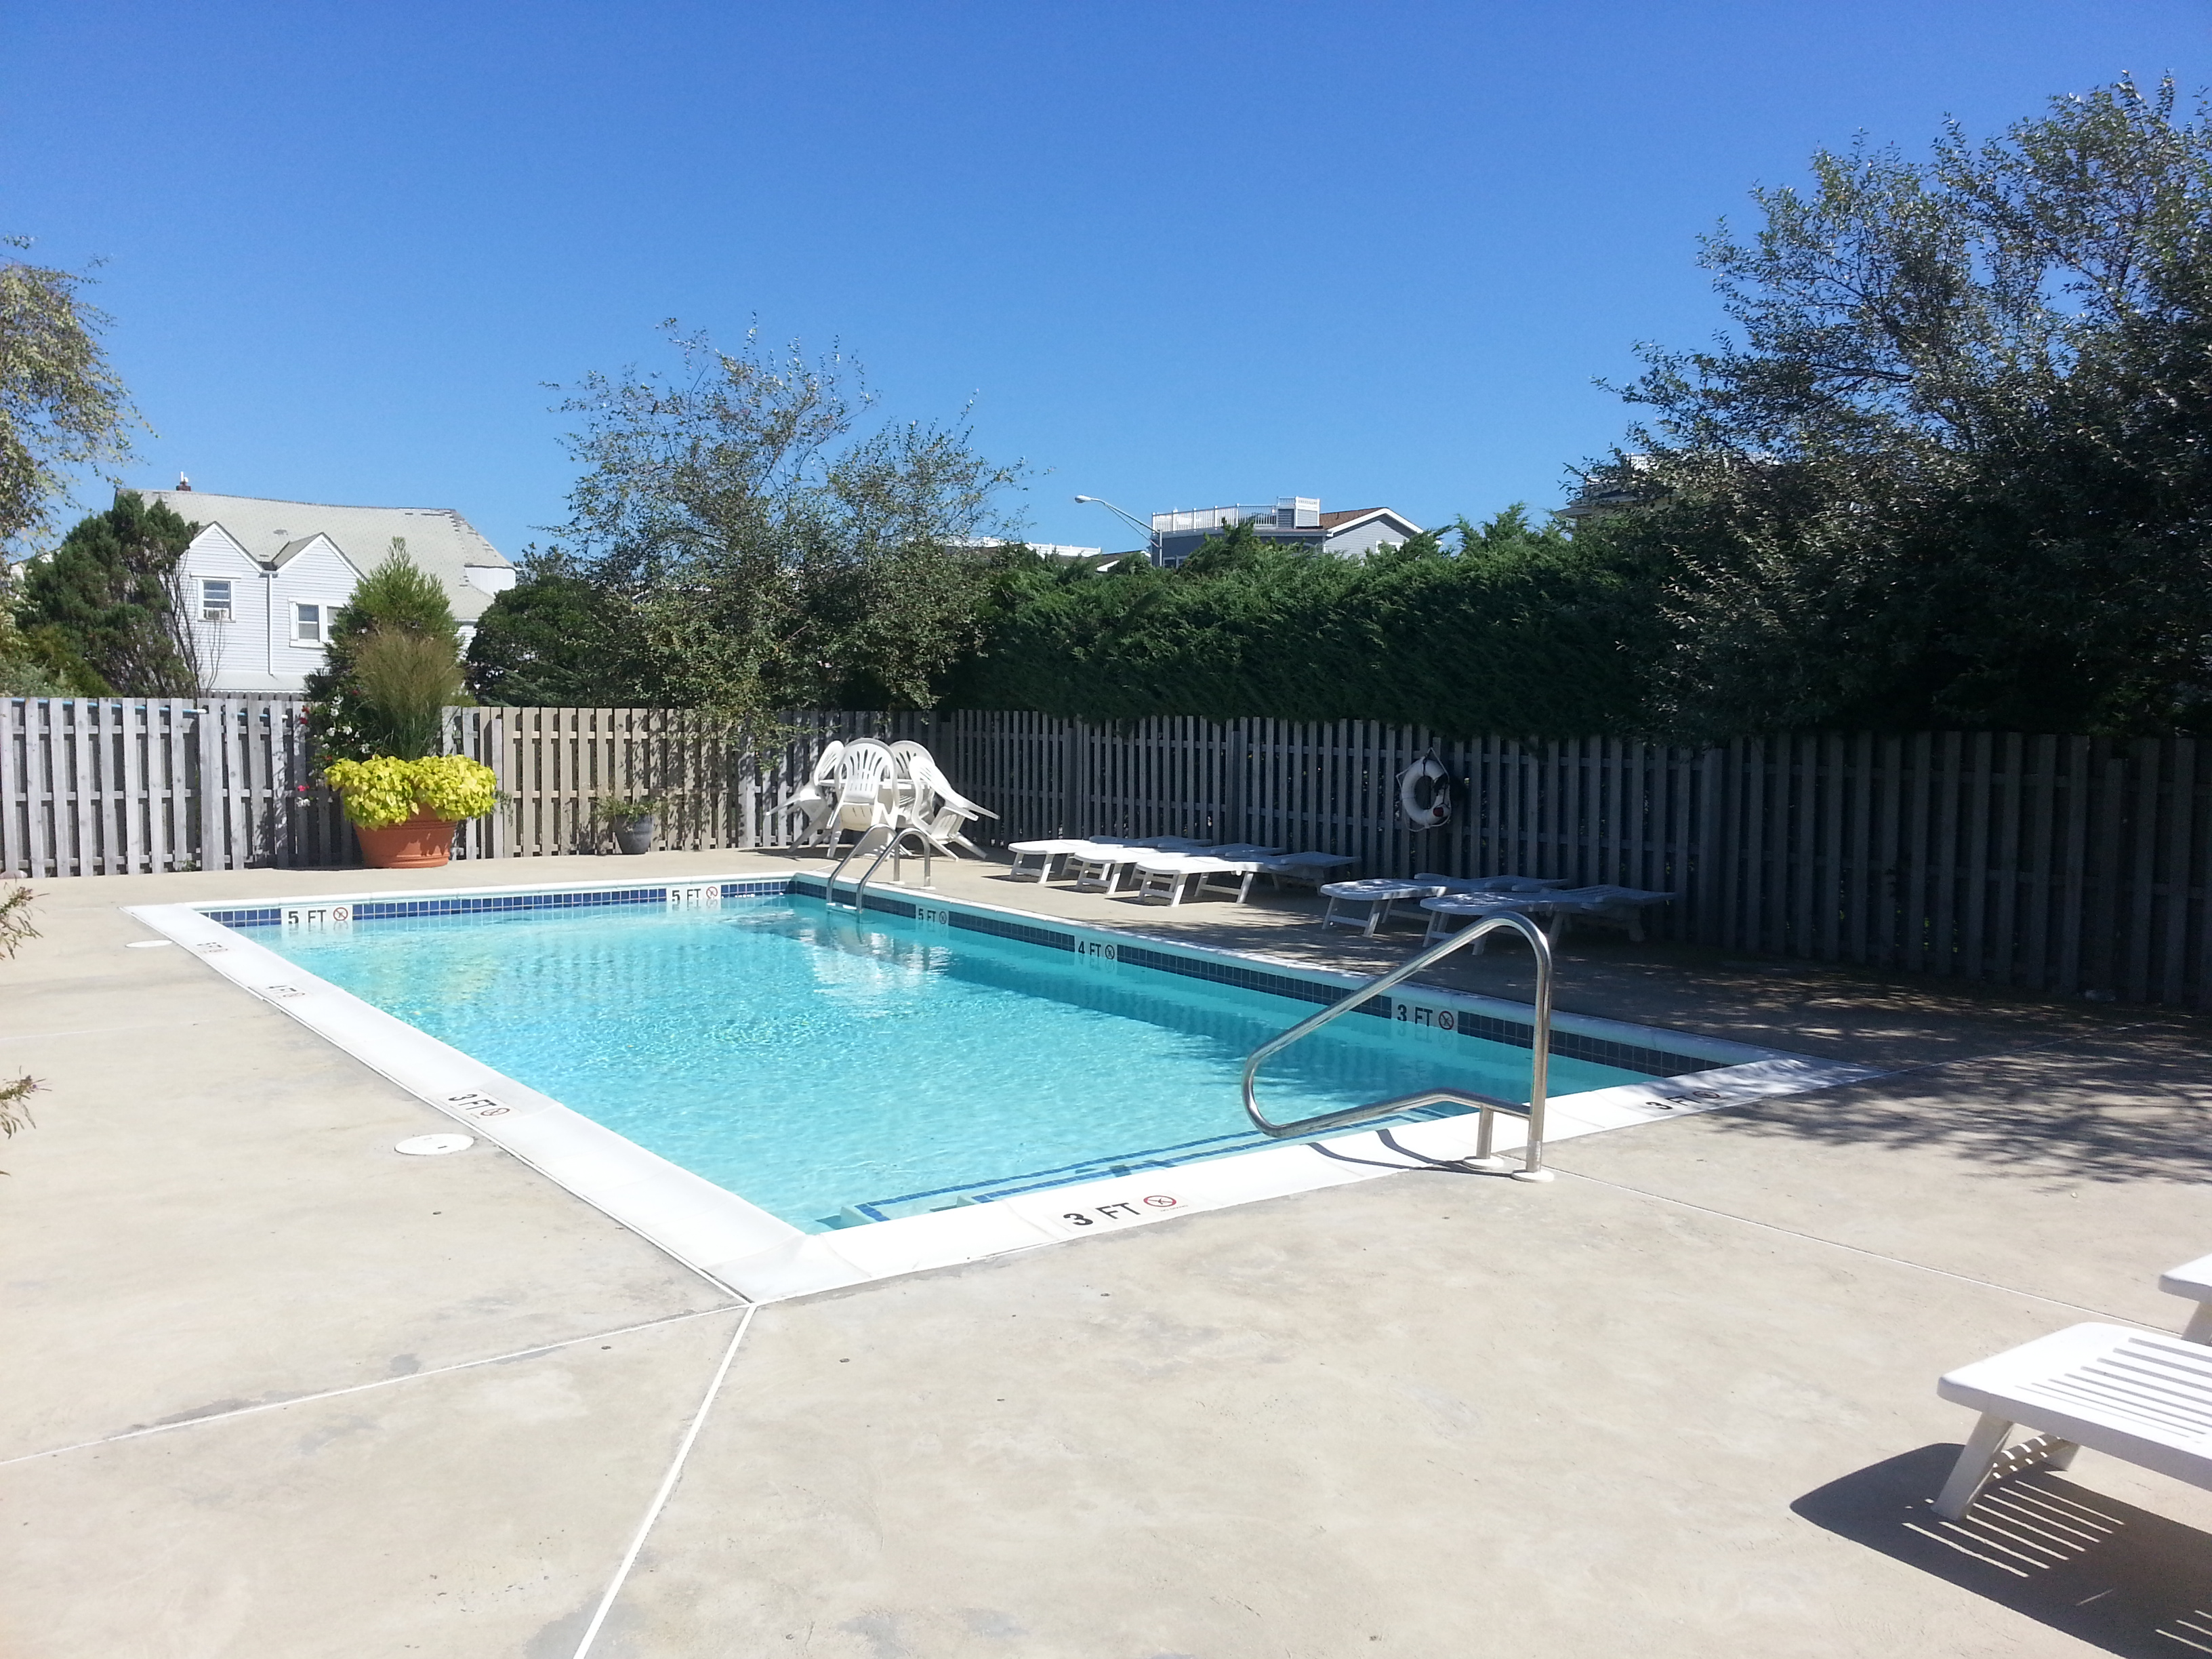 Among the amenities in Chris' Landing is this pool which is fenced and landscaped for privacy.